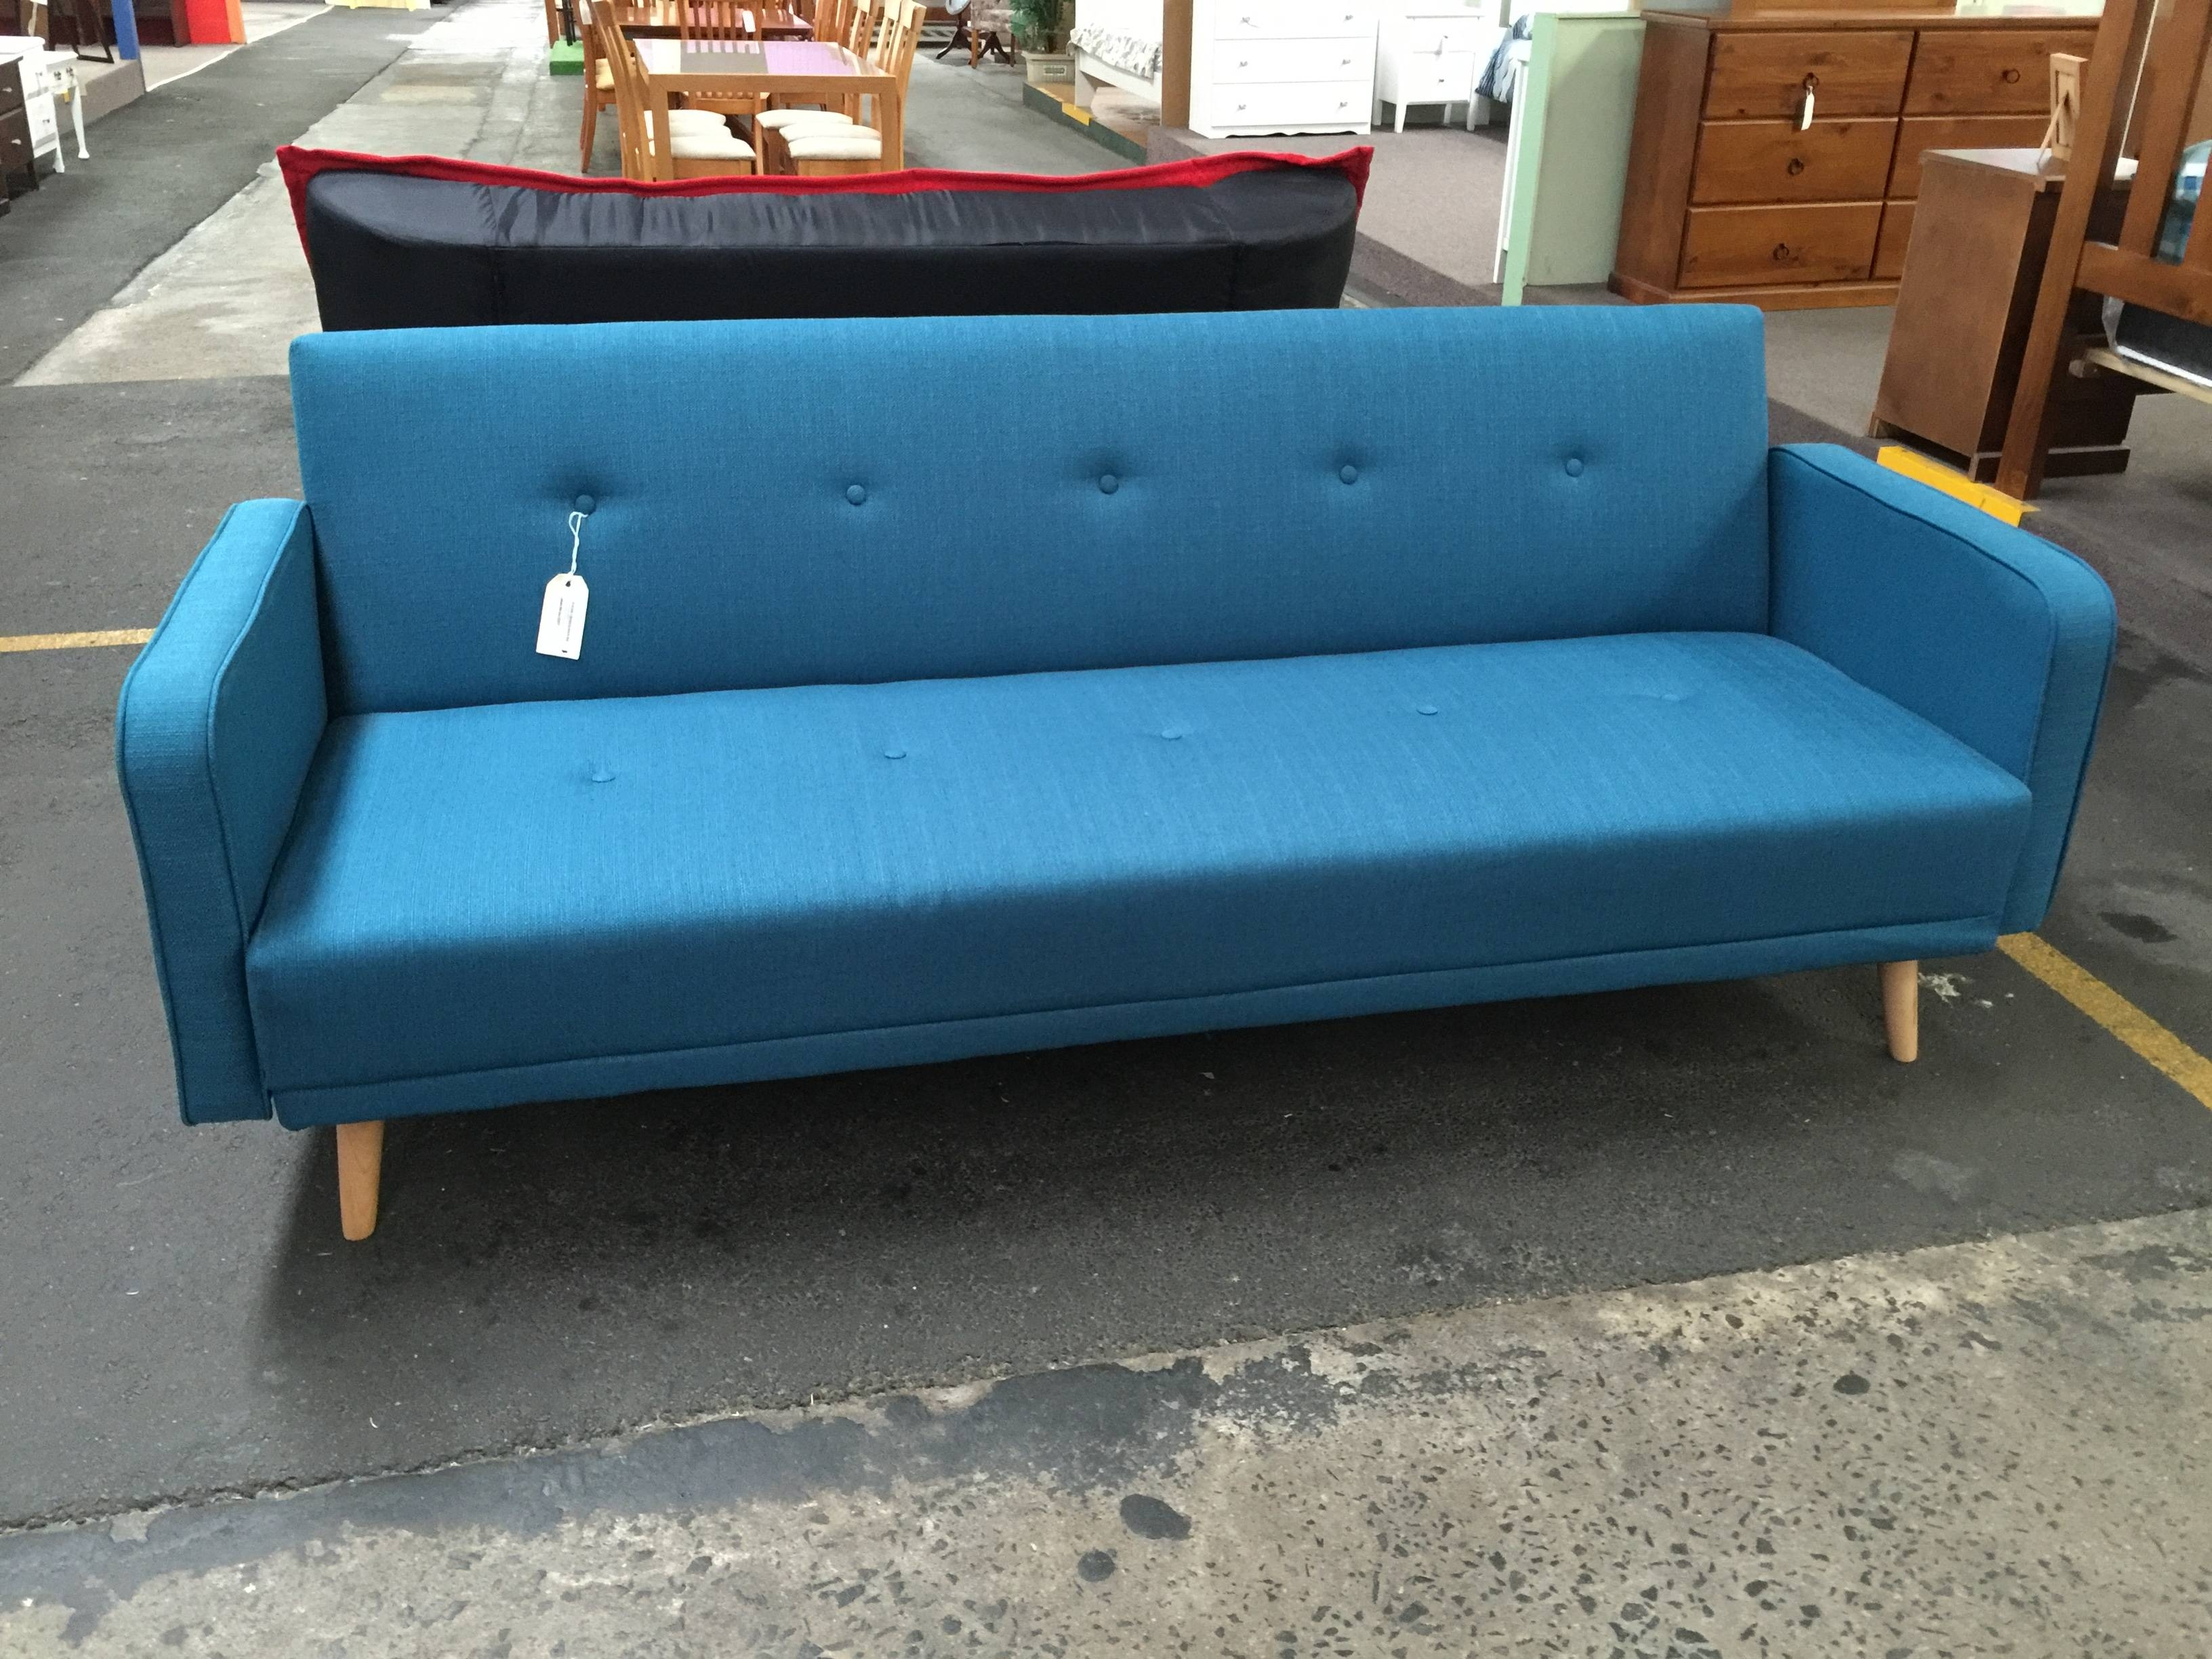 Retro Click Clack Sofa Bed | The Big Shed in Clic Clac Sofa Beds (Image 14 of 15)